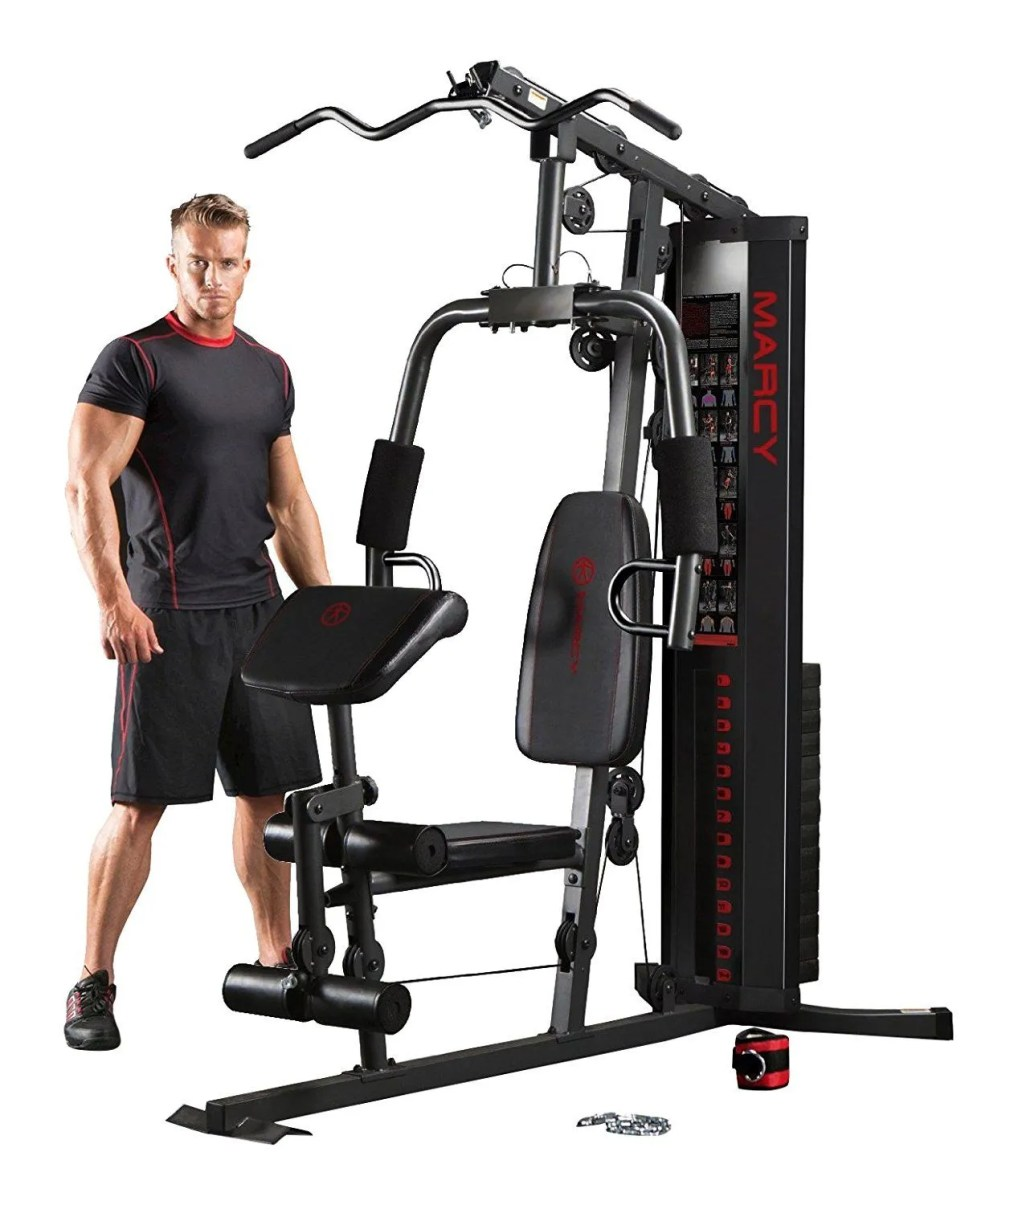 Best Home Gym Equipment Reviews UK 2019